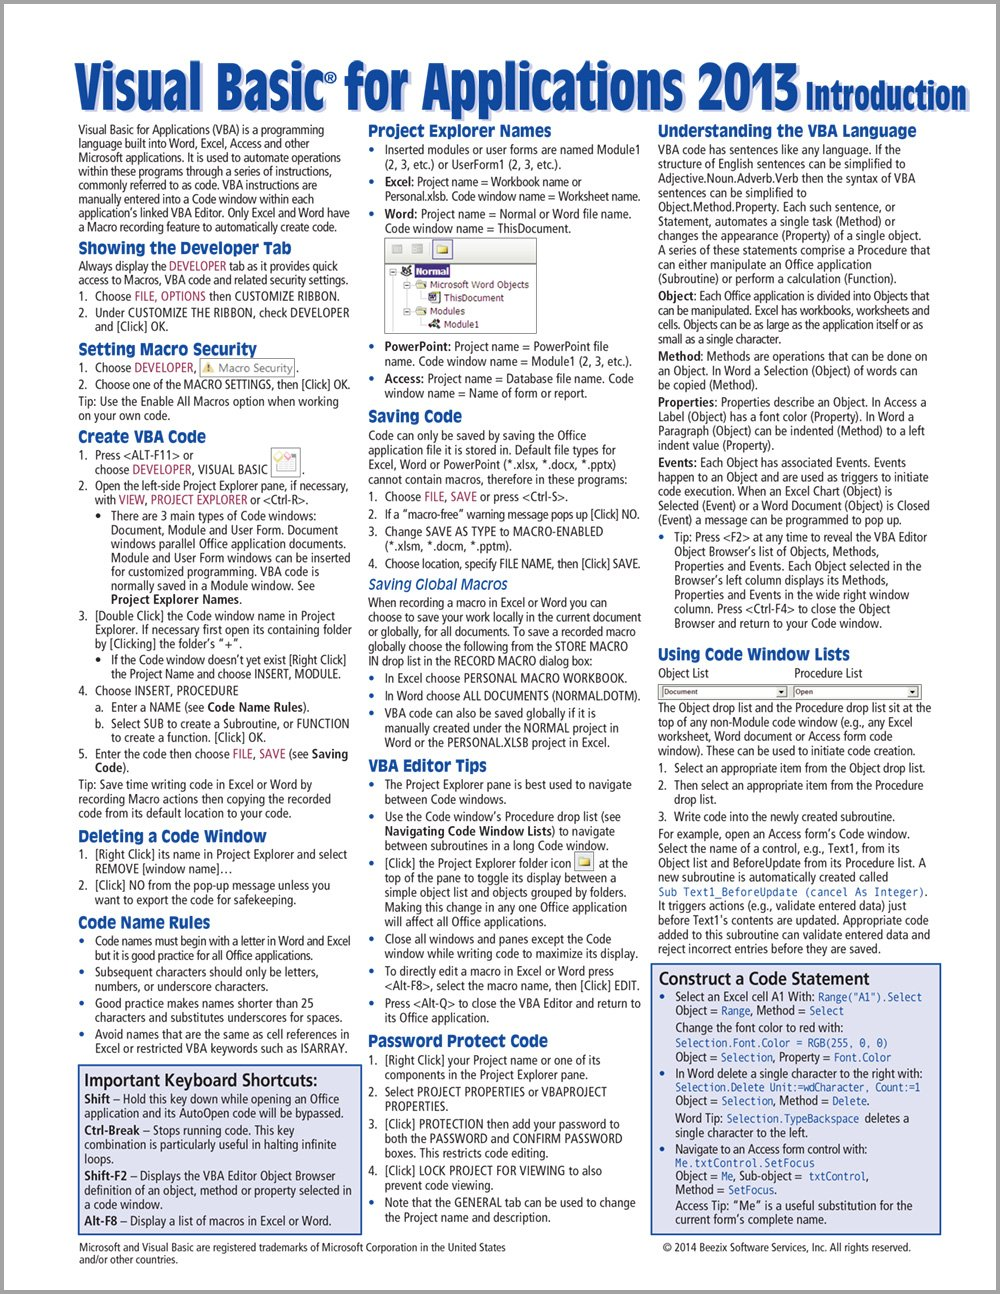 Visual Basic for Applications (VBA) 2013 Quick Reference Guide